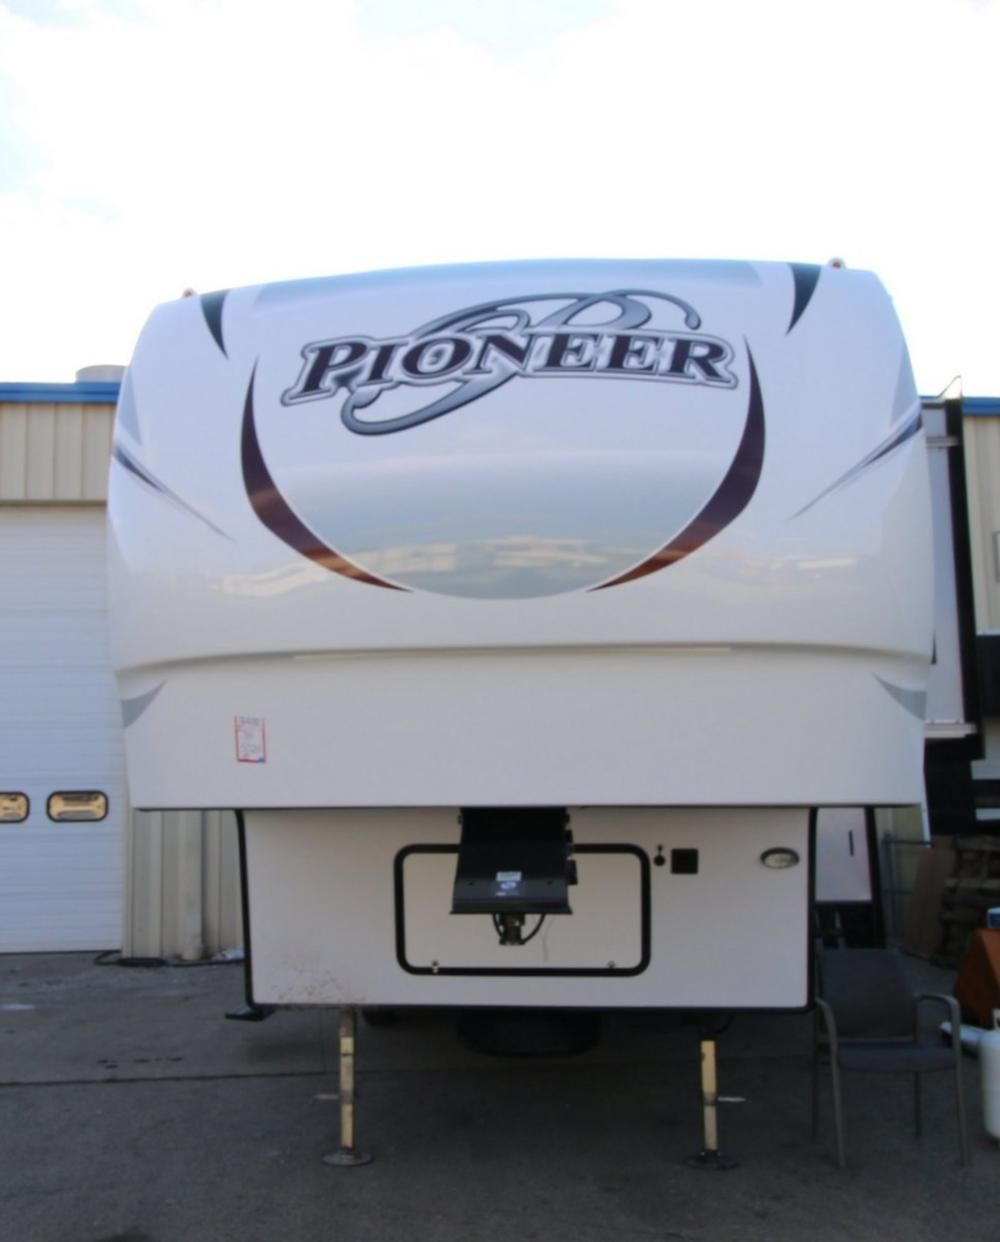 Camper Dealers In Ohio >> Our New 2018 Heartland Pioneer 276 5th Wheel Camper From Camping